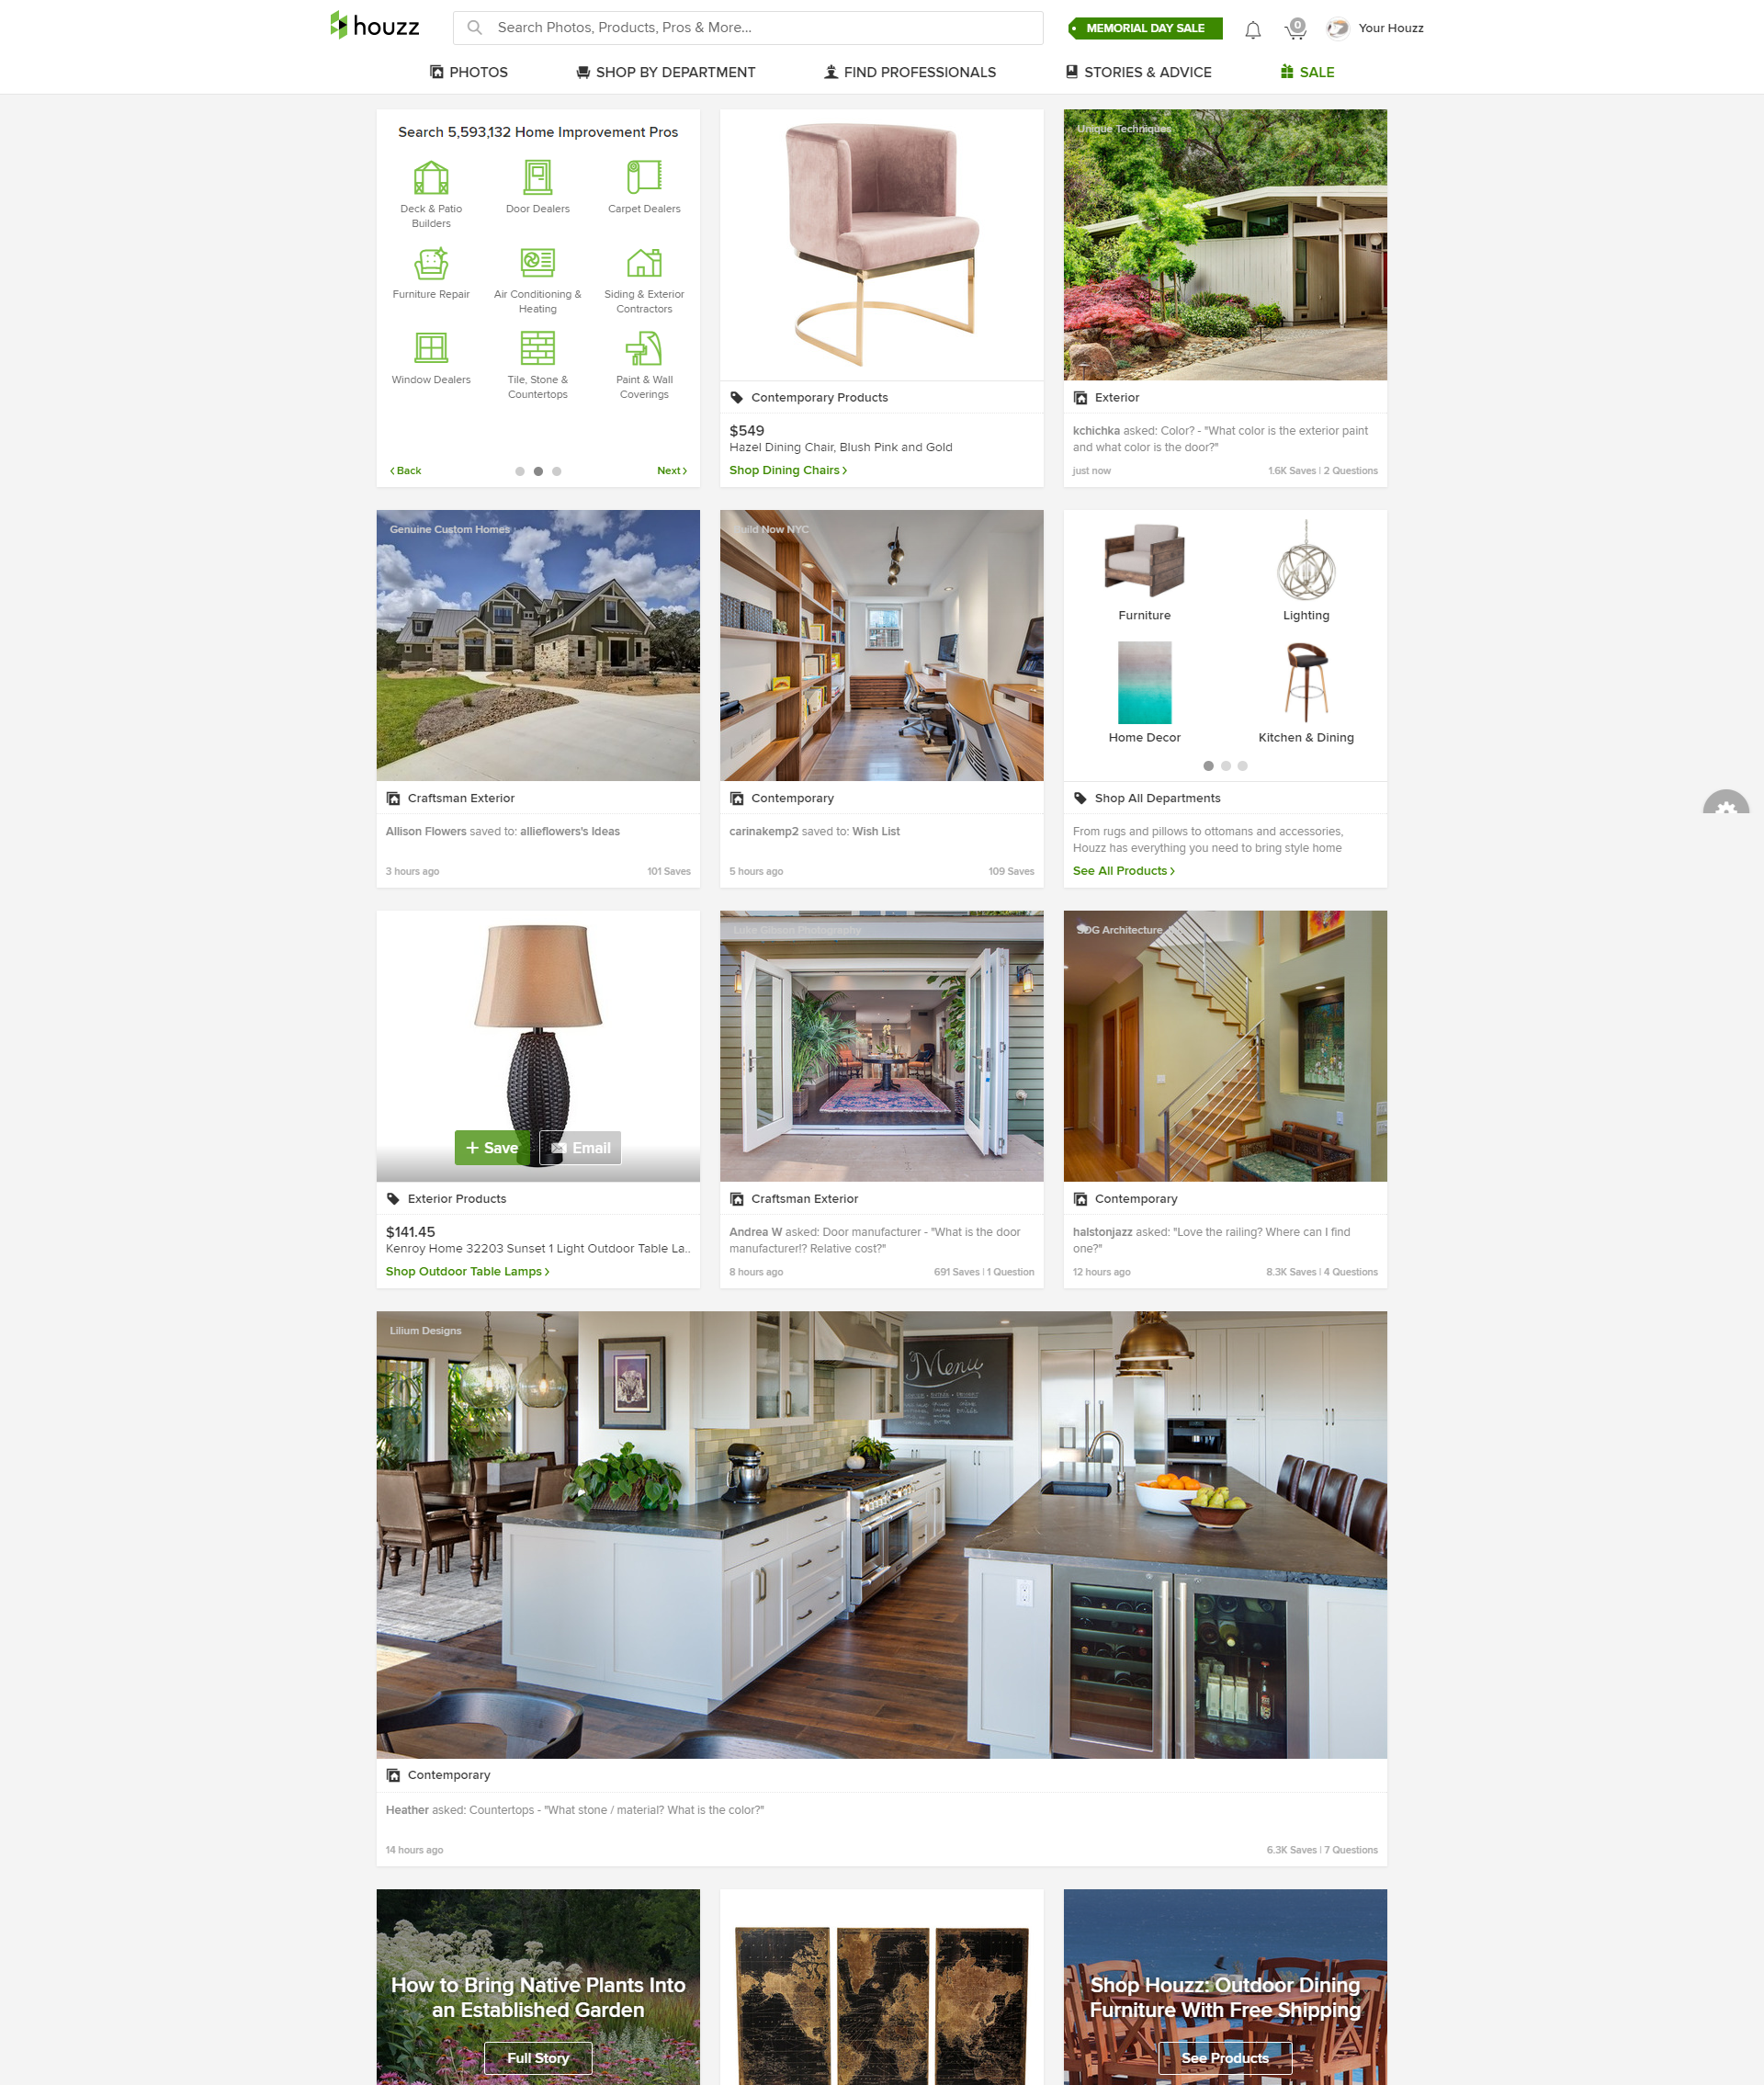 Houzz Website Homepage Is An Inspiring Example For Furniture Web Stores